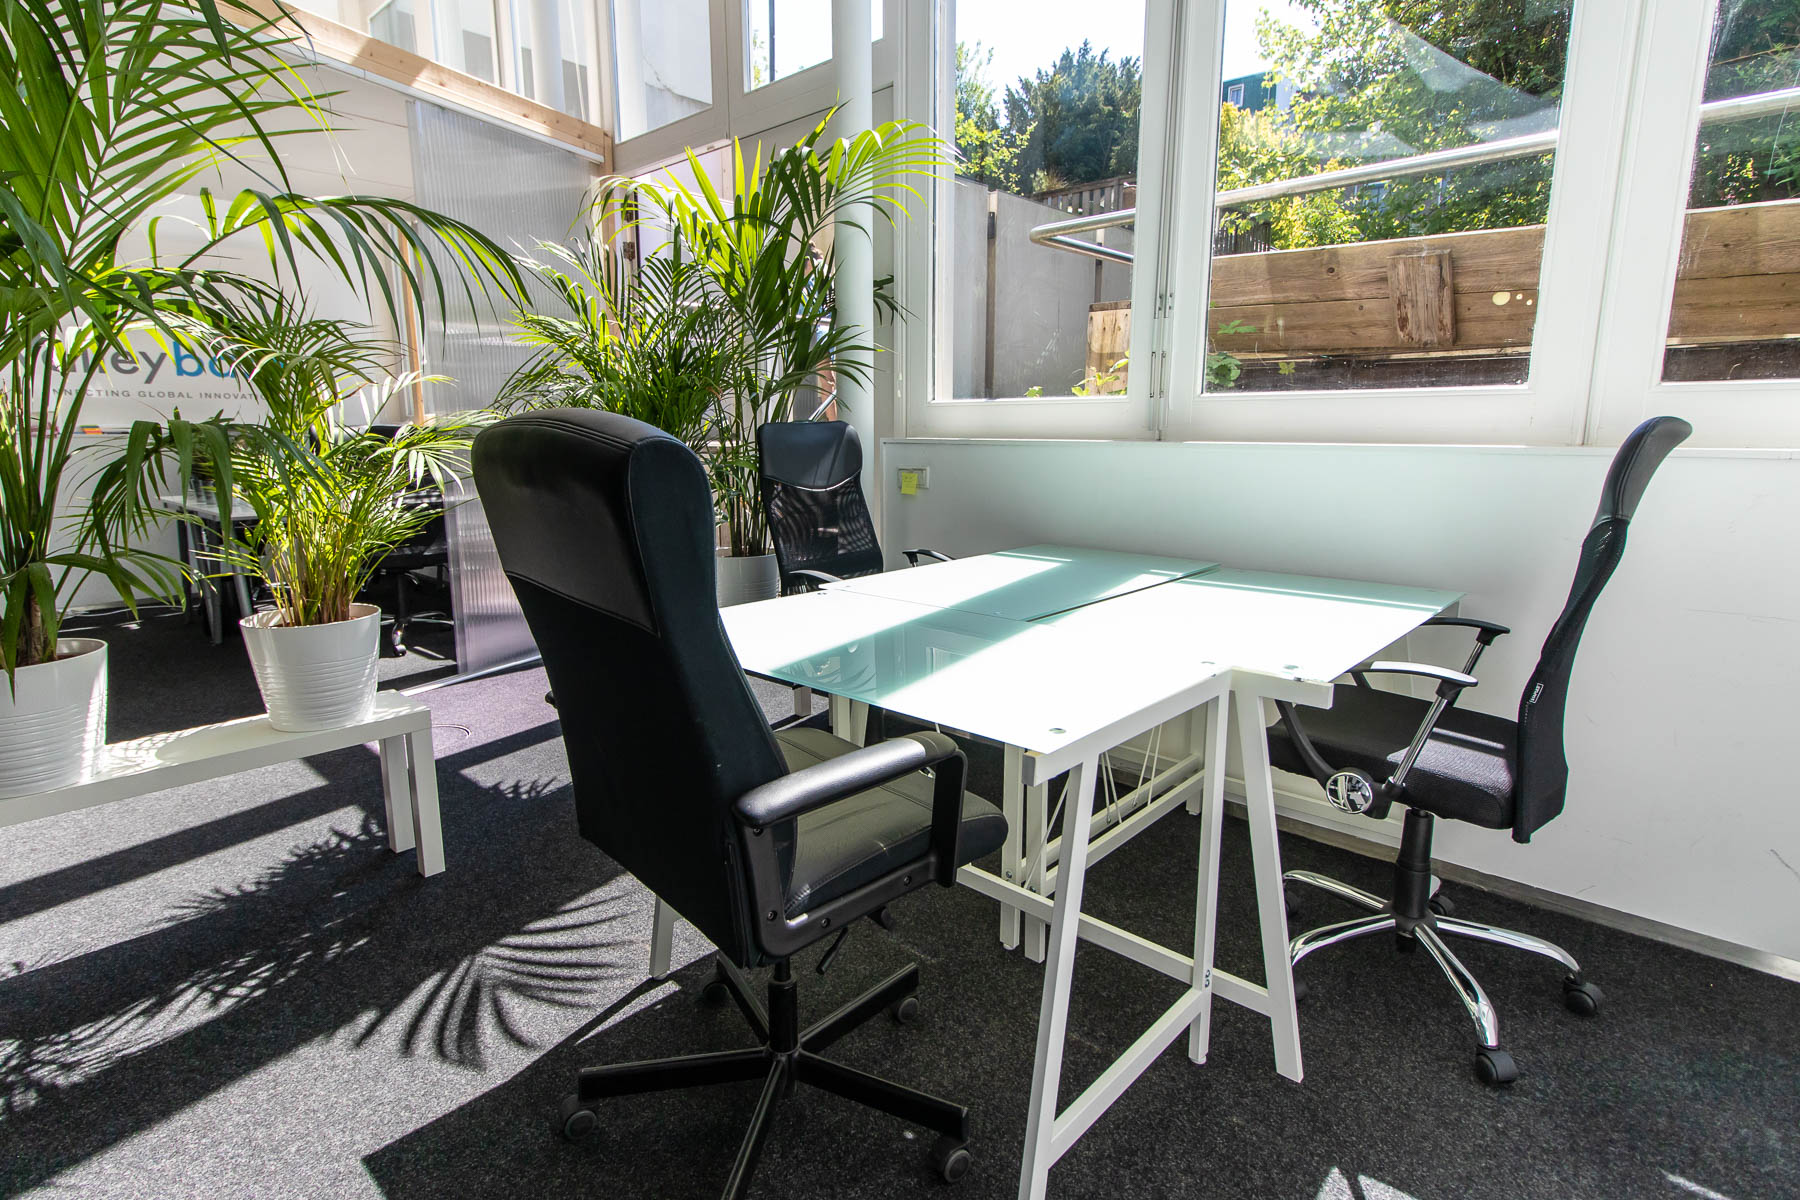 Rent office space Overtoom 47, Amsterdam (30)